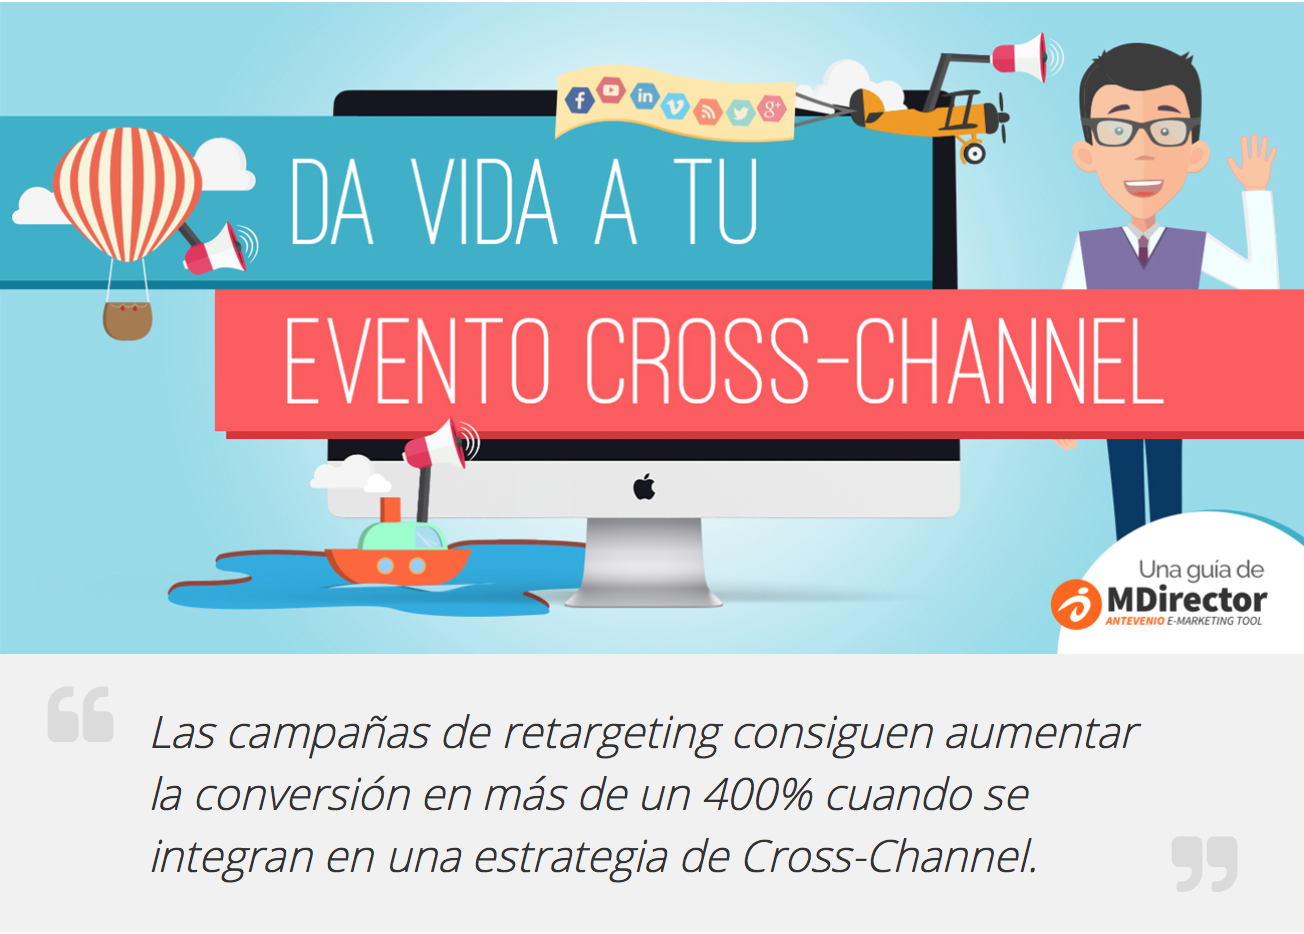 Da vida a tu evento Cross-Channel (MDirector)